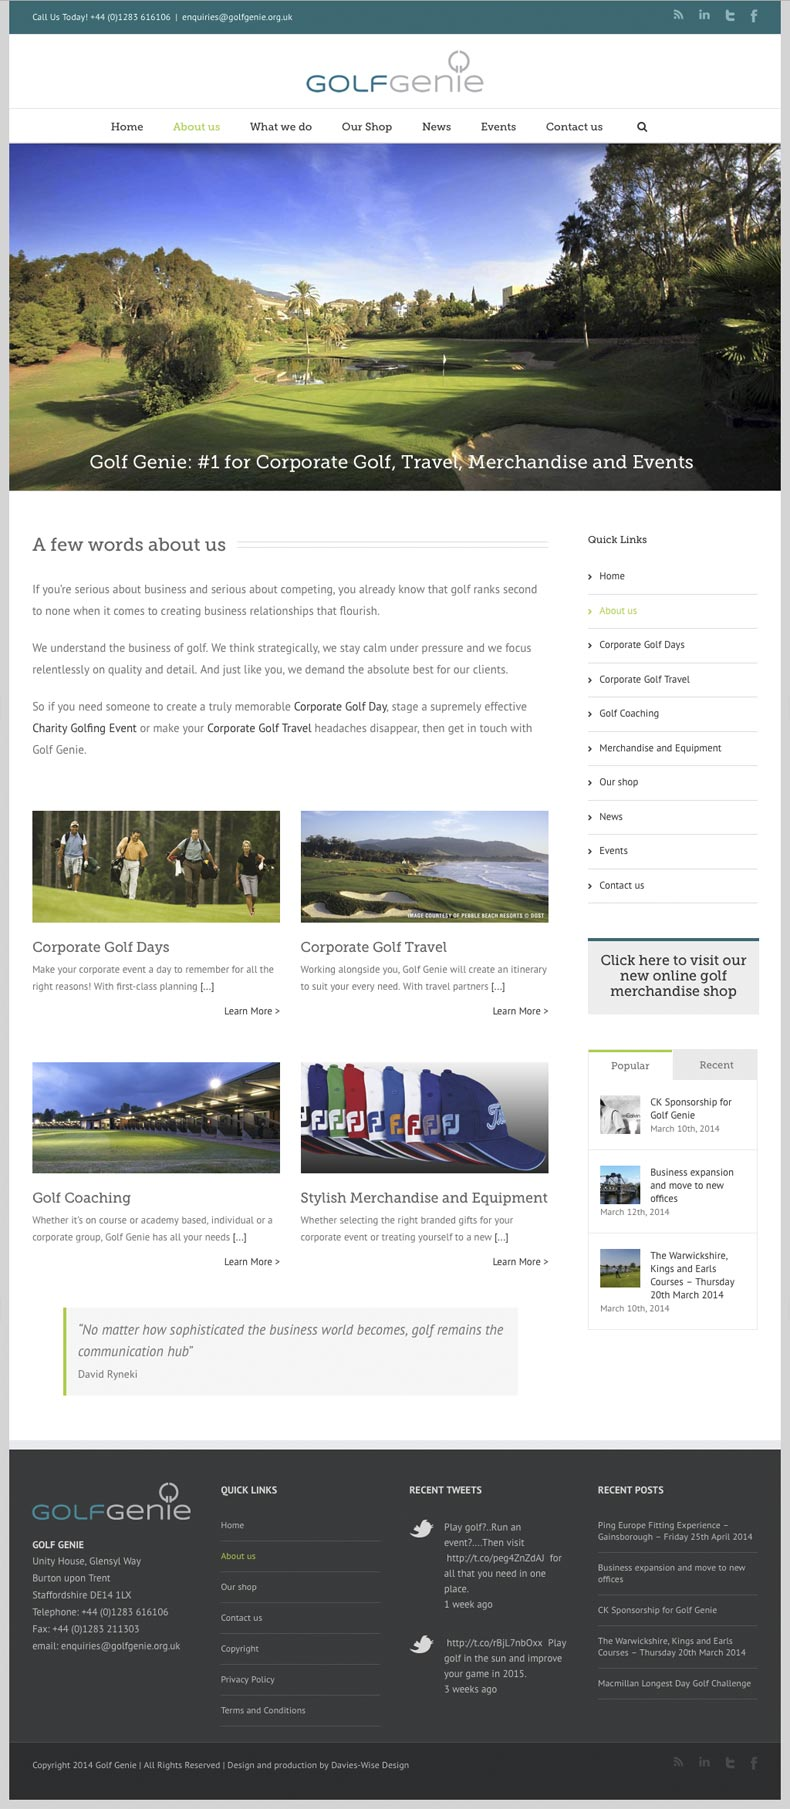 Golf Genie web site about us page